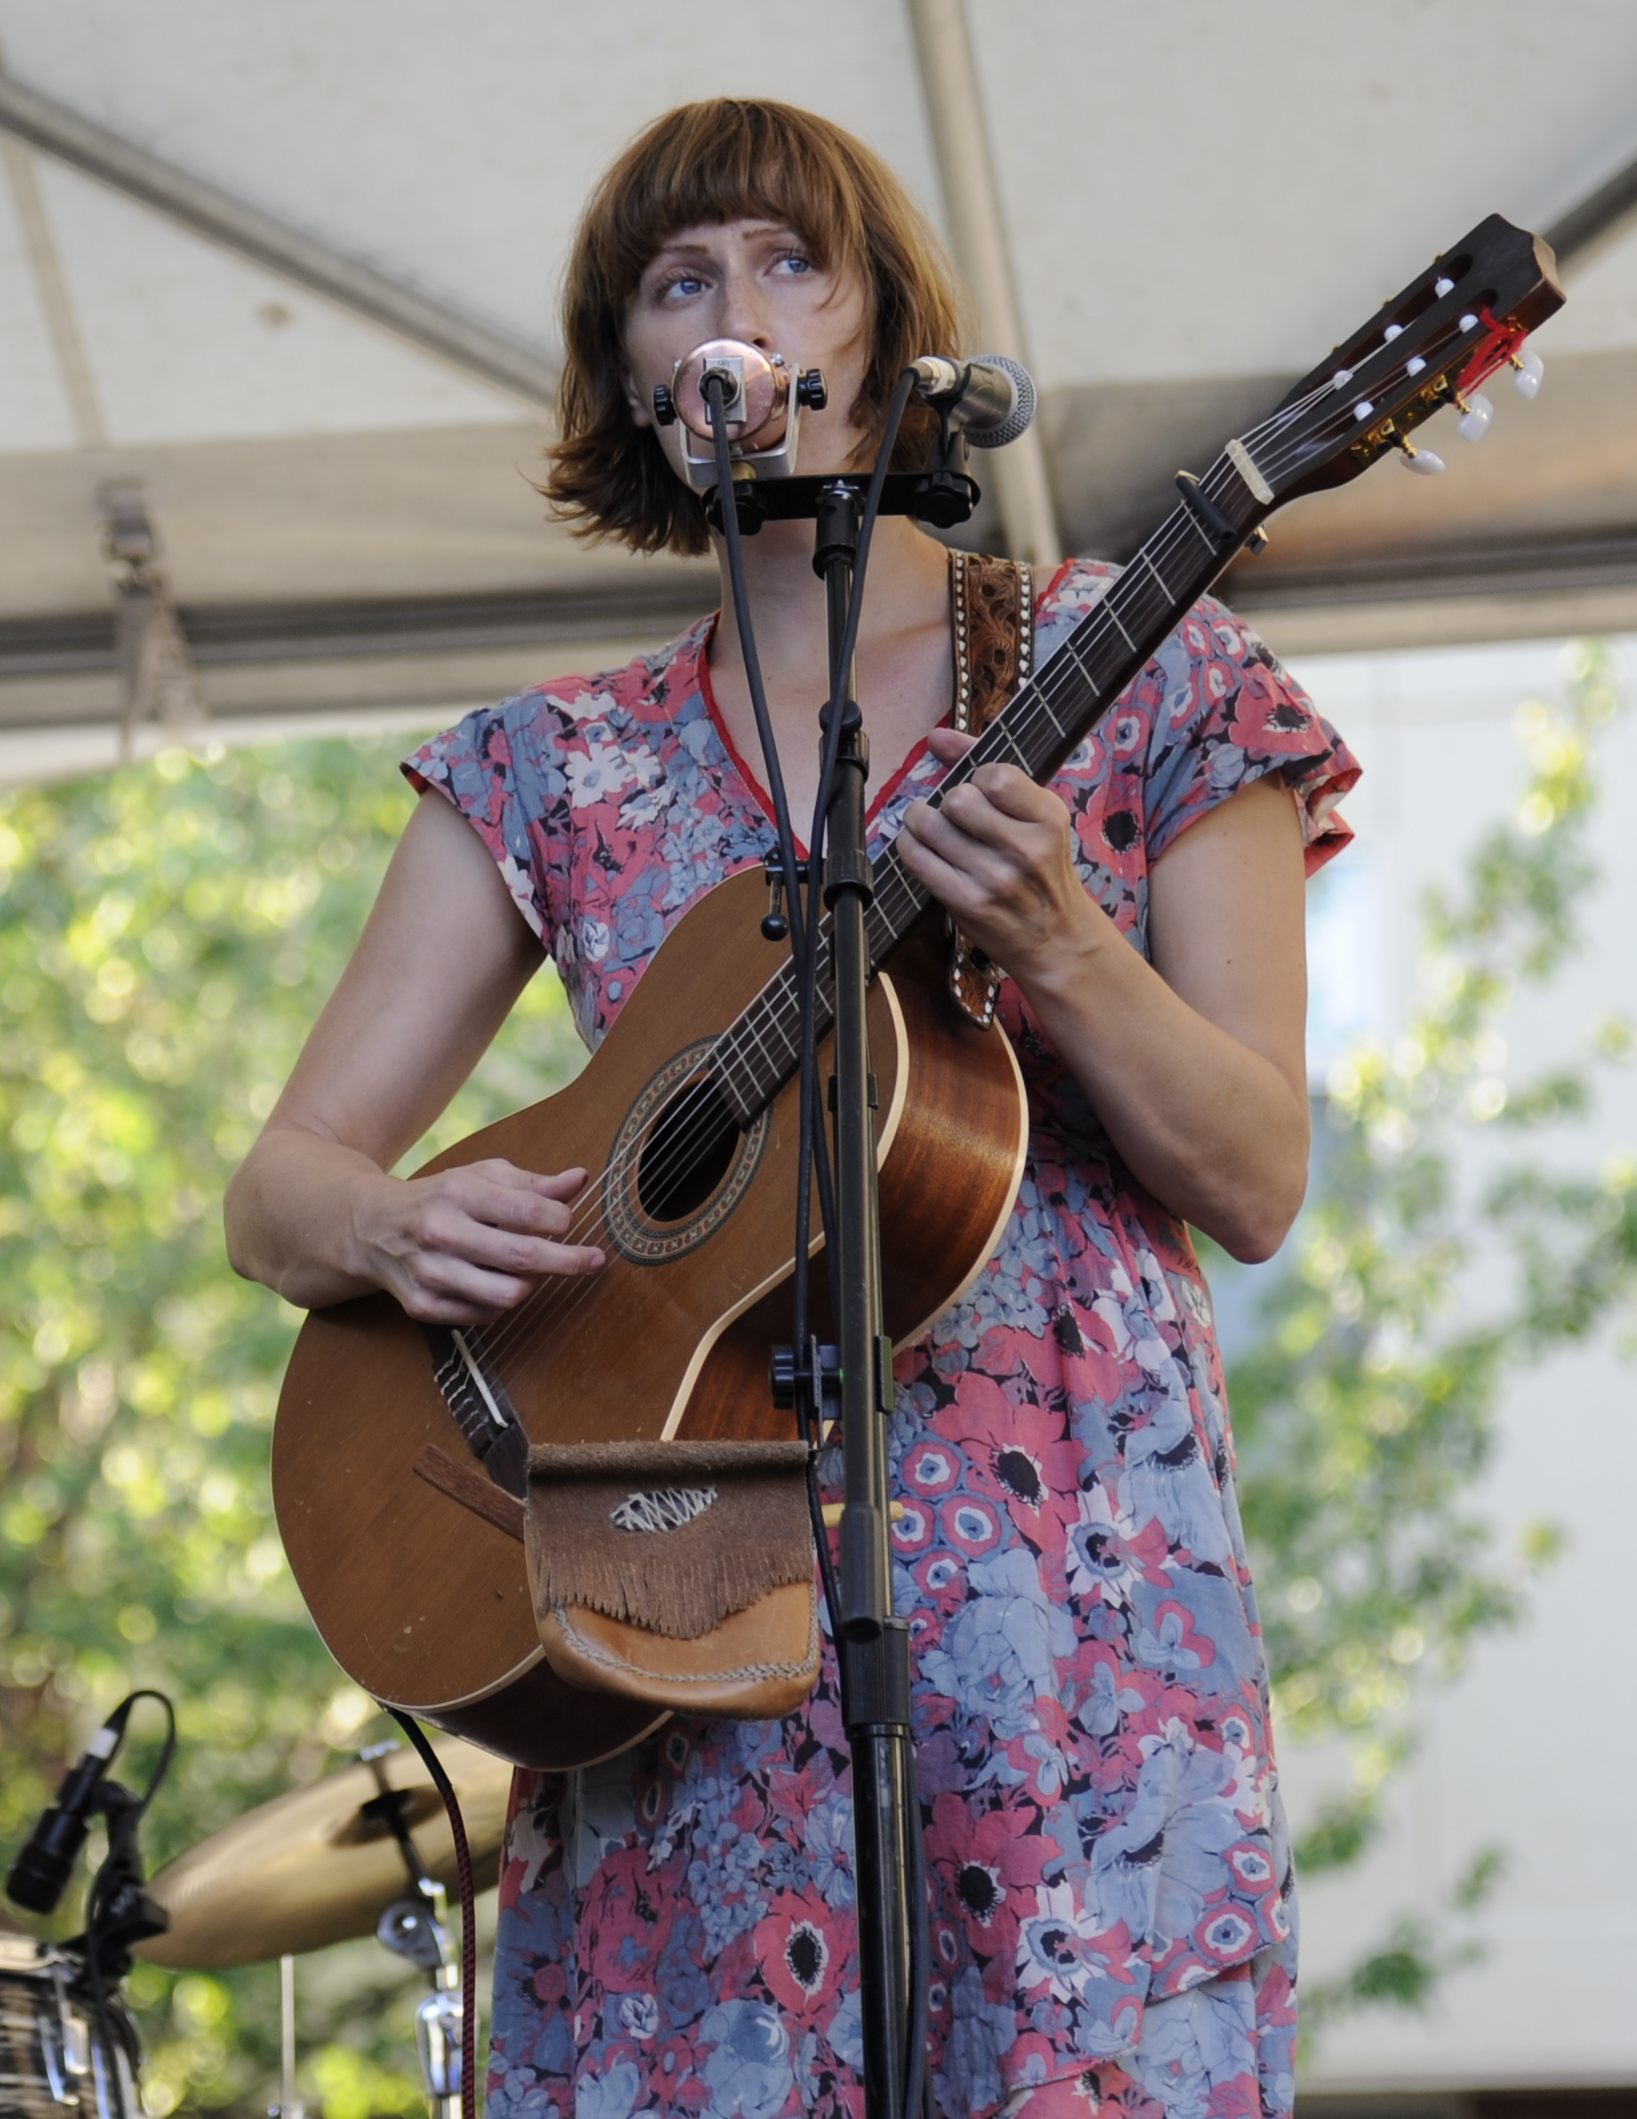 Gibson performing live, 2012